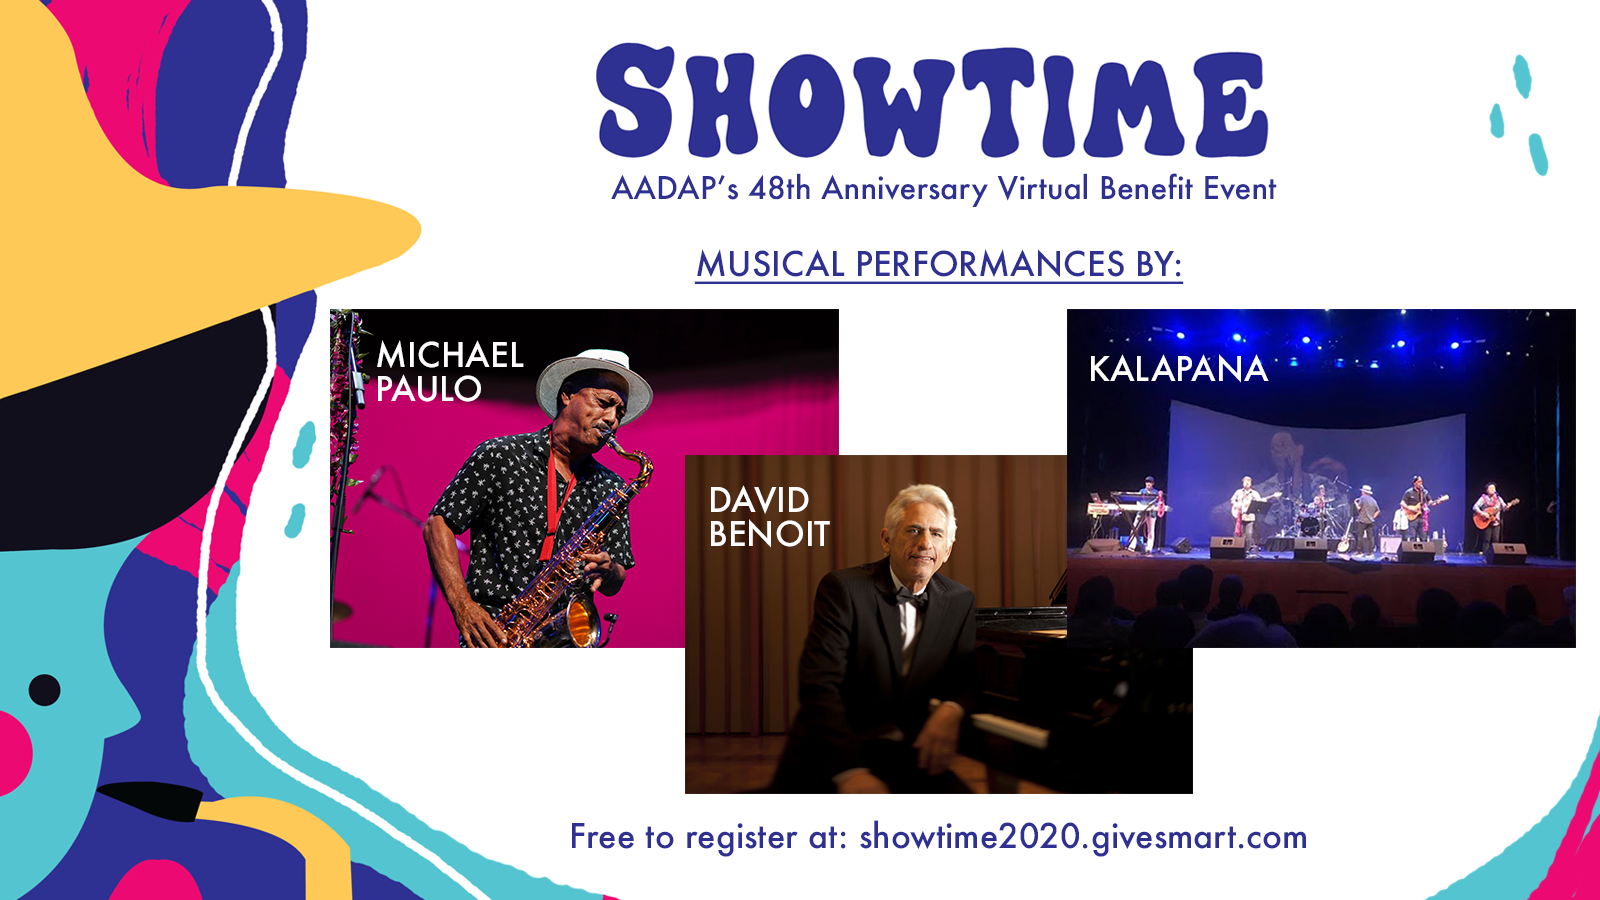 Showtime2020 Poster- All Artists